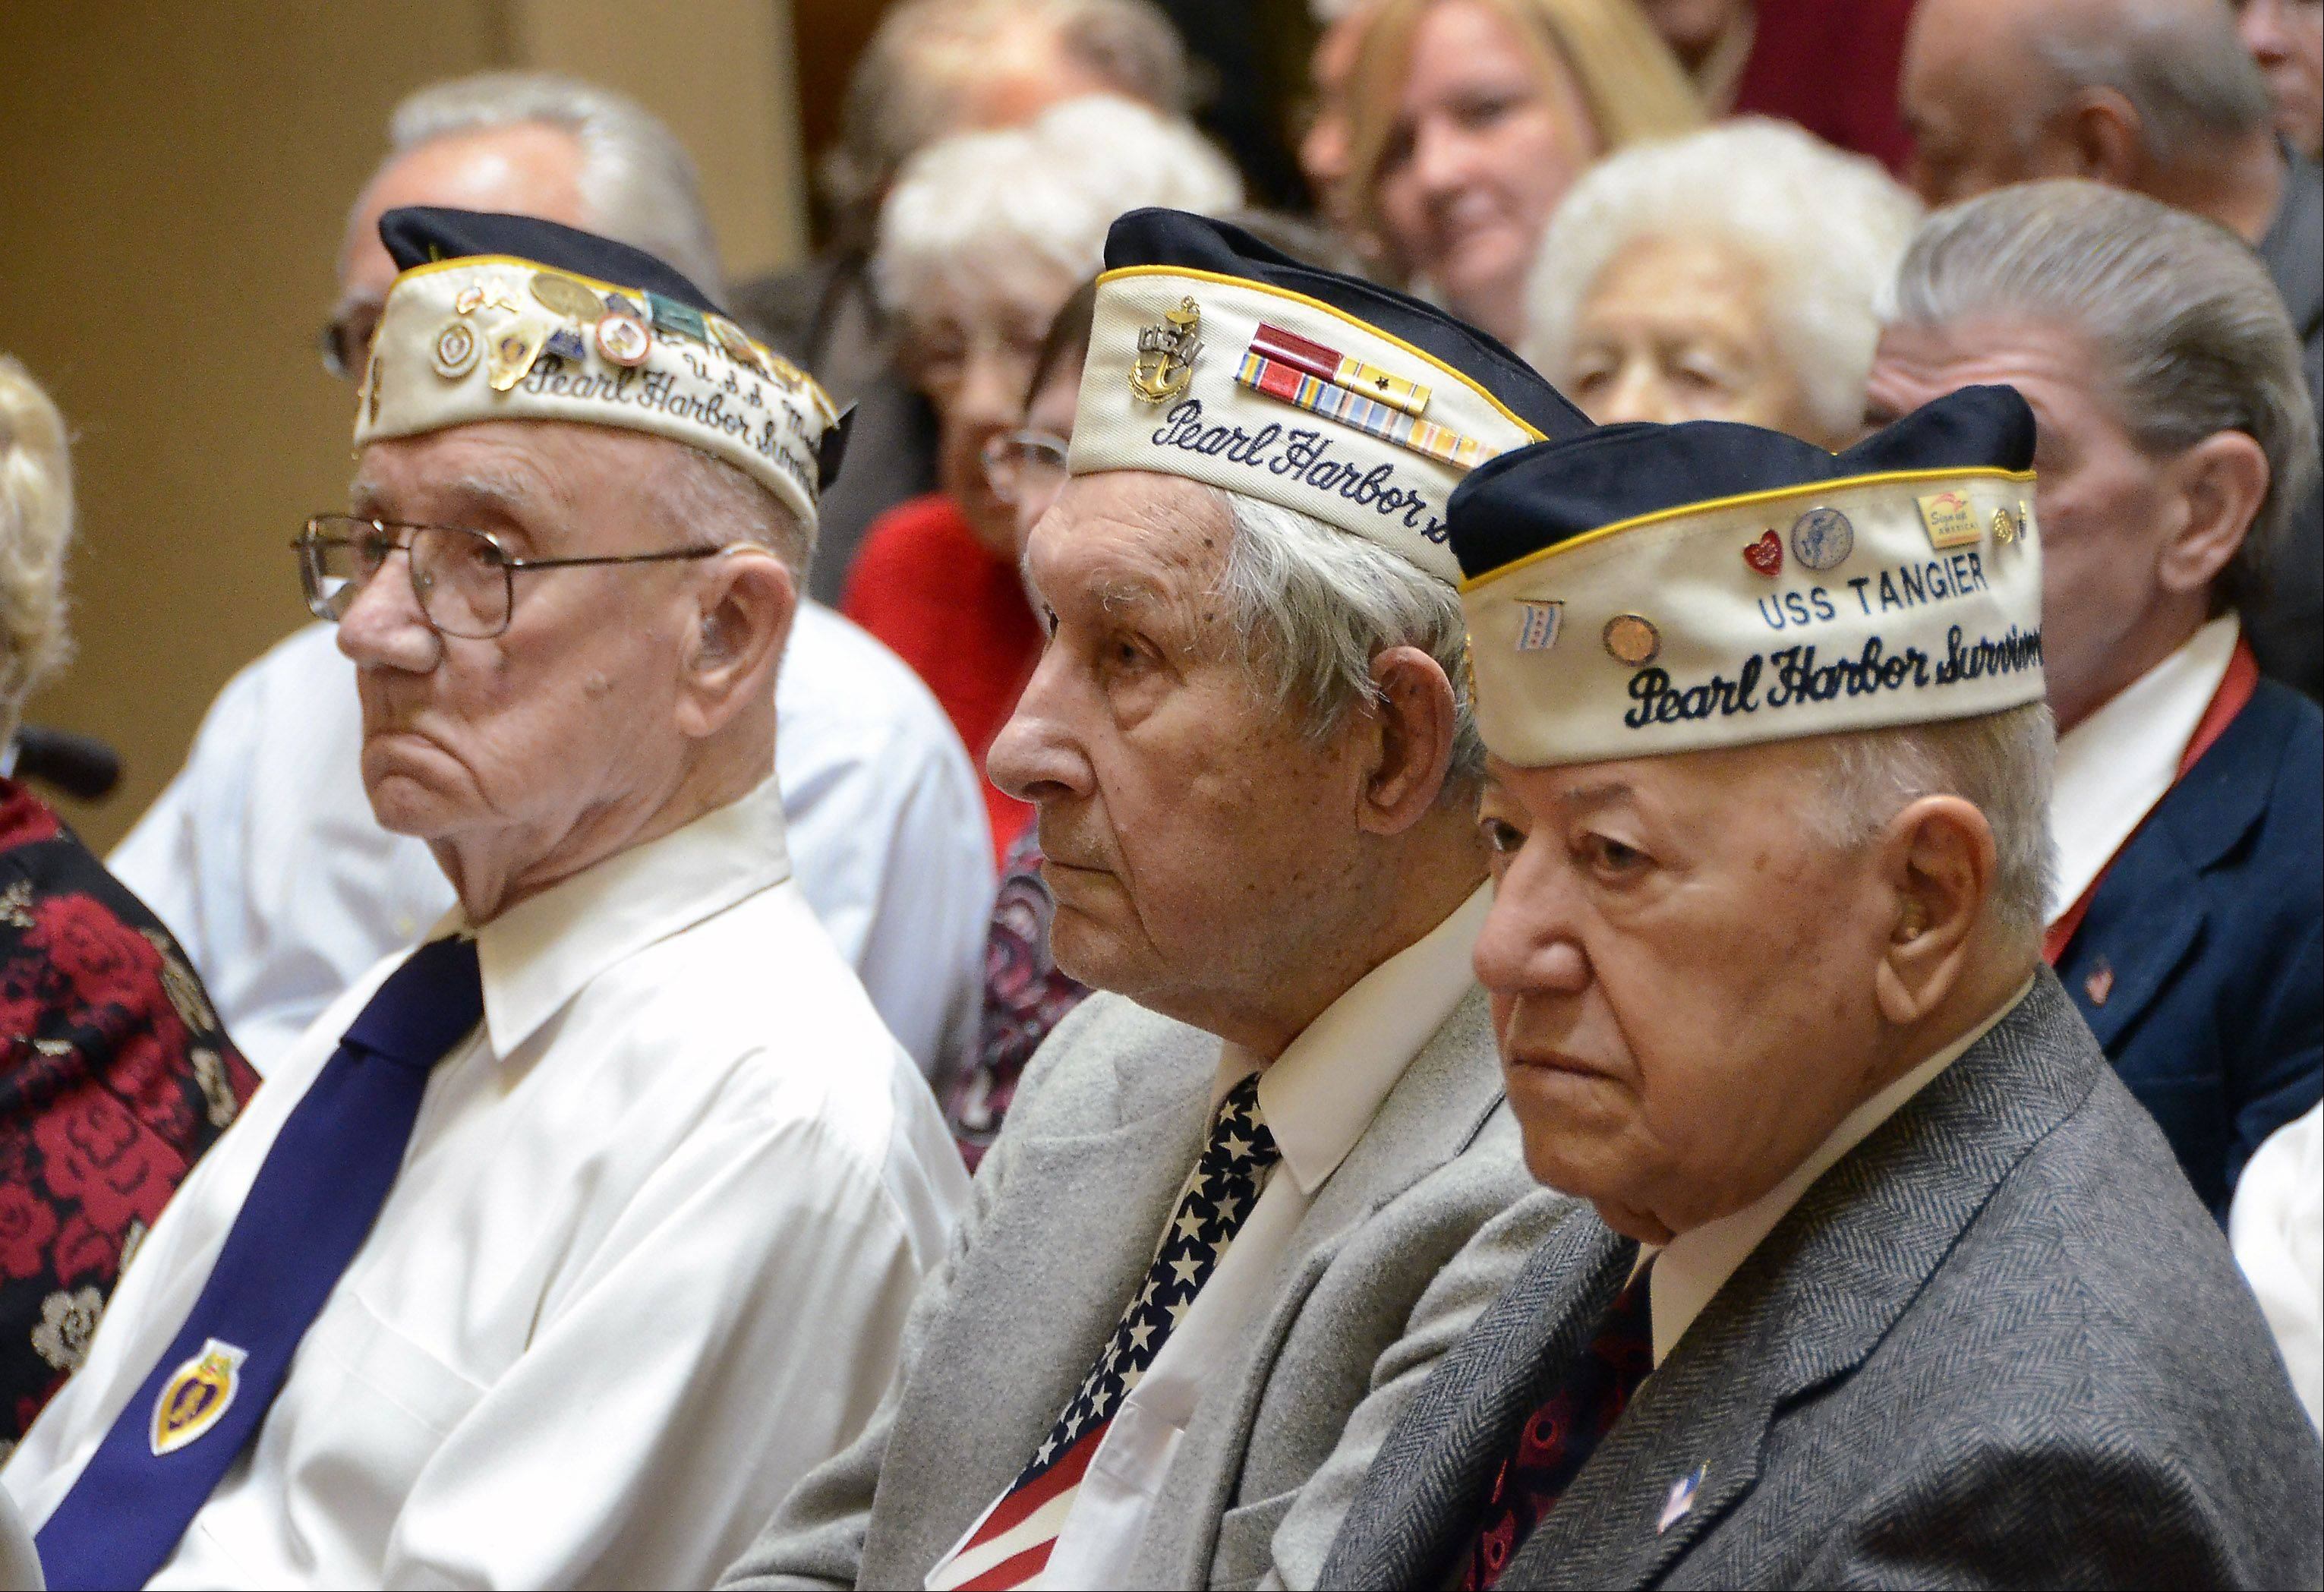 Pearl Harbor survivors join Des Plaines remembrance